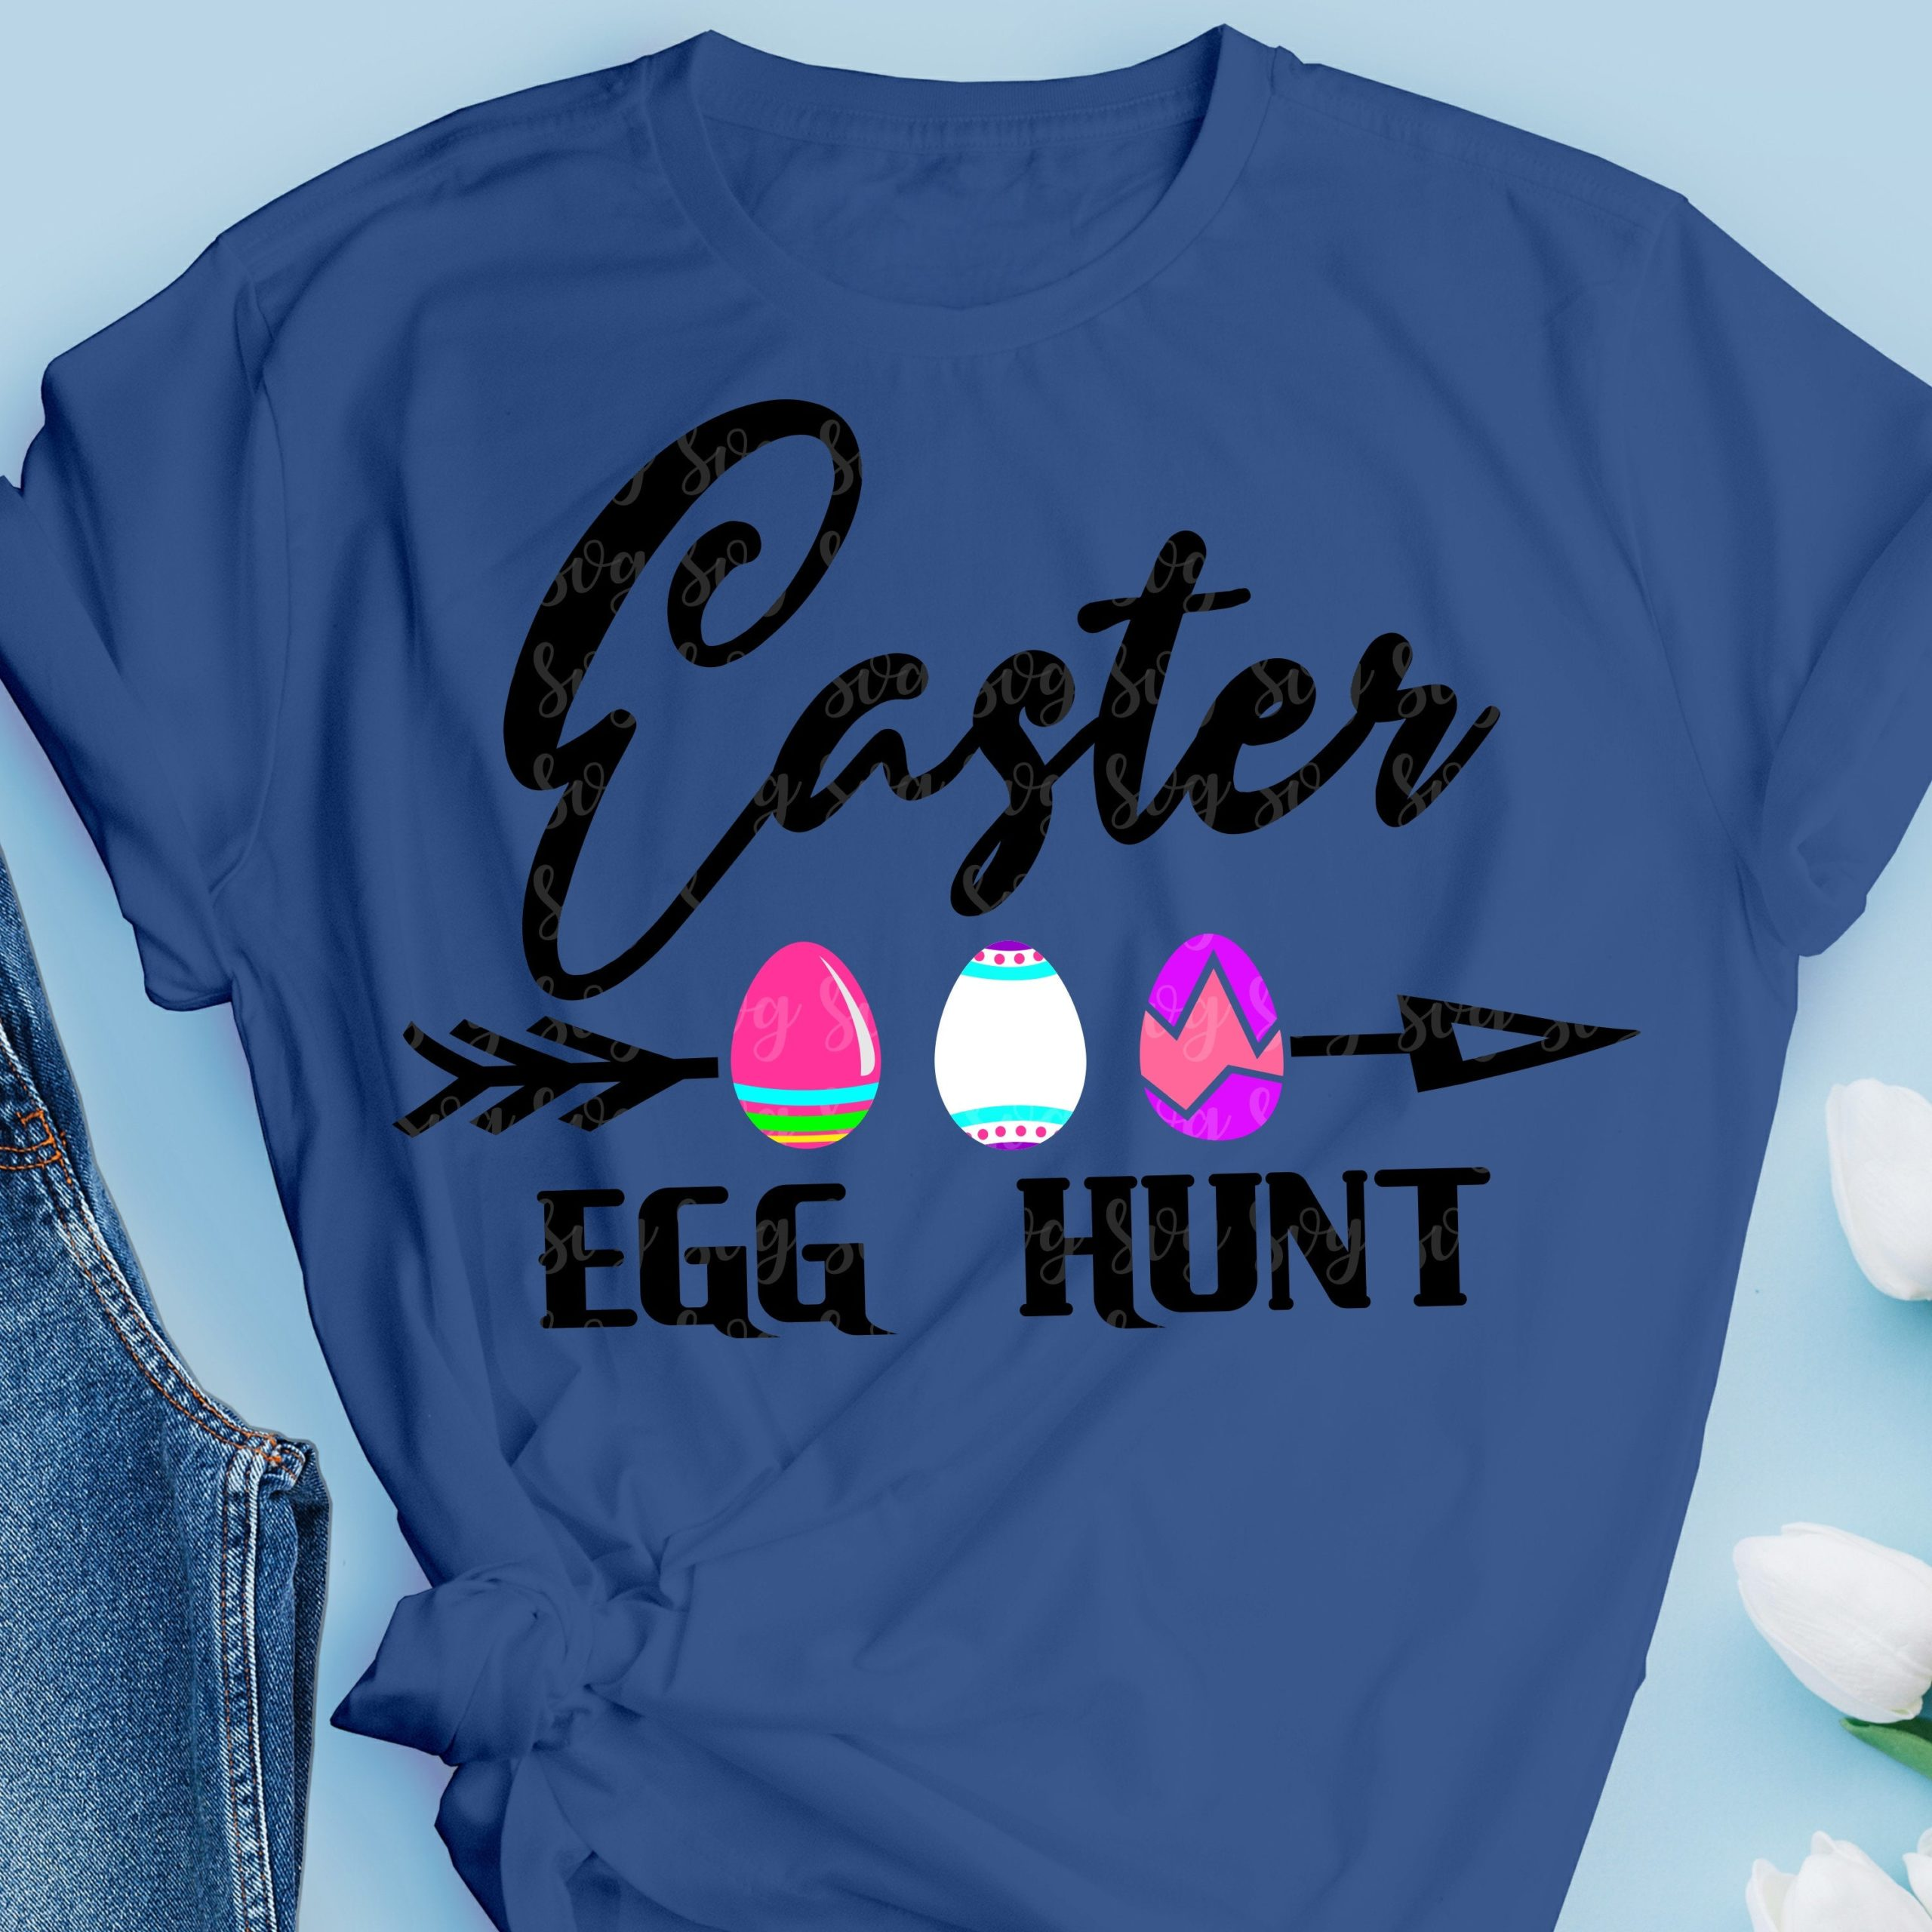 Easter-egg-hunt-svgdxf-png-eps-file-for-cutting-machines-cameo-cricut-sublimationeaster-svg-designs-easter-cut-file-cricut-svg-60513d07